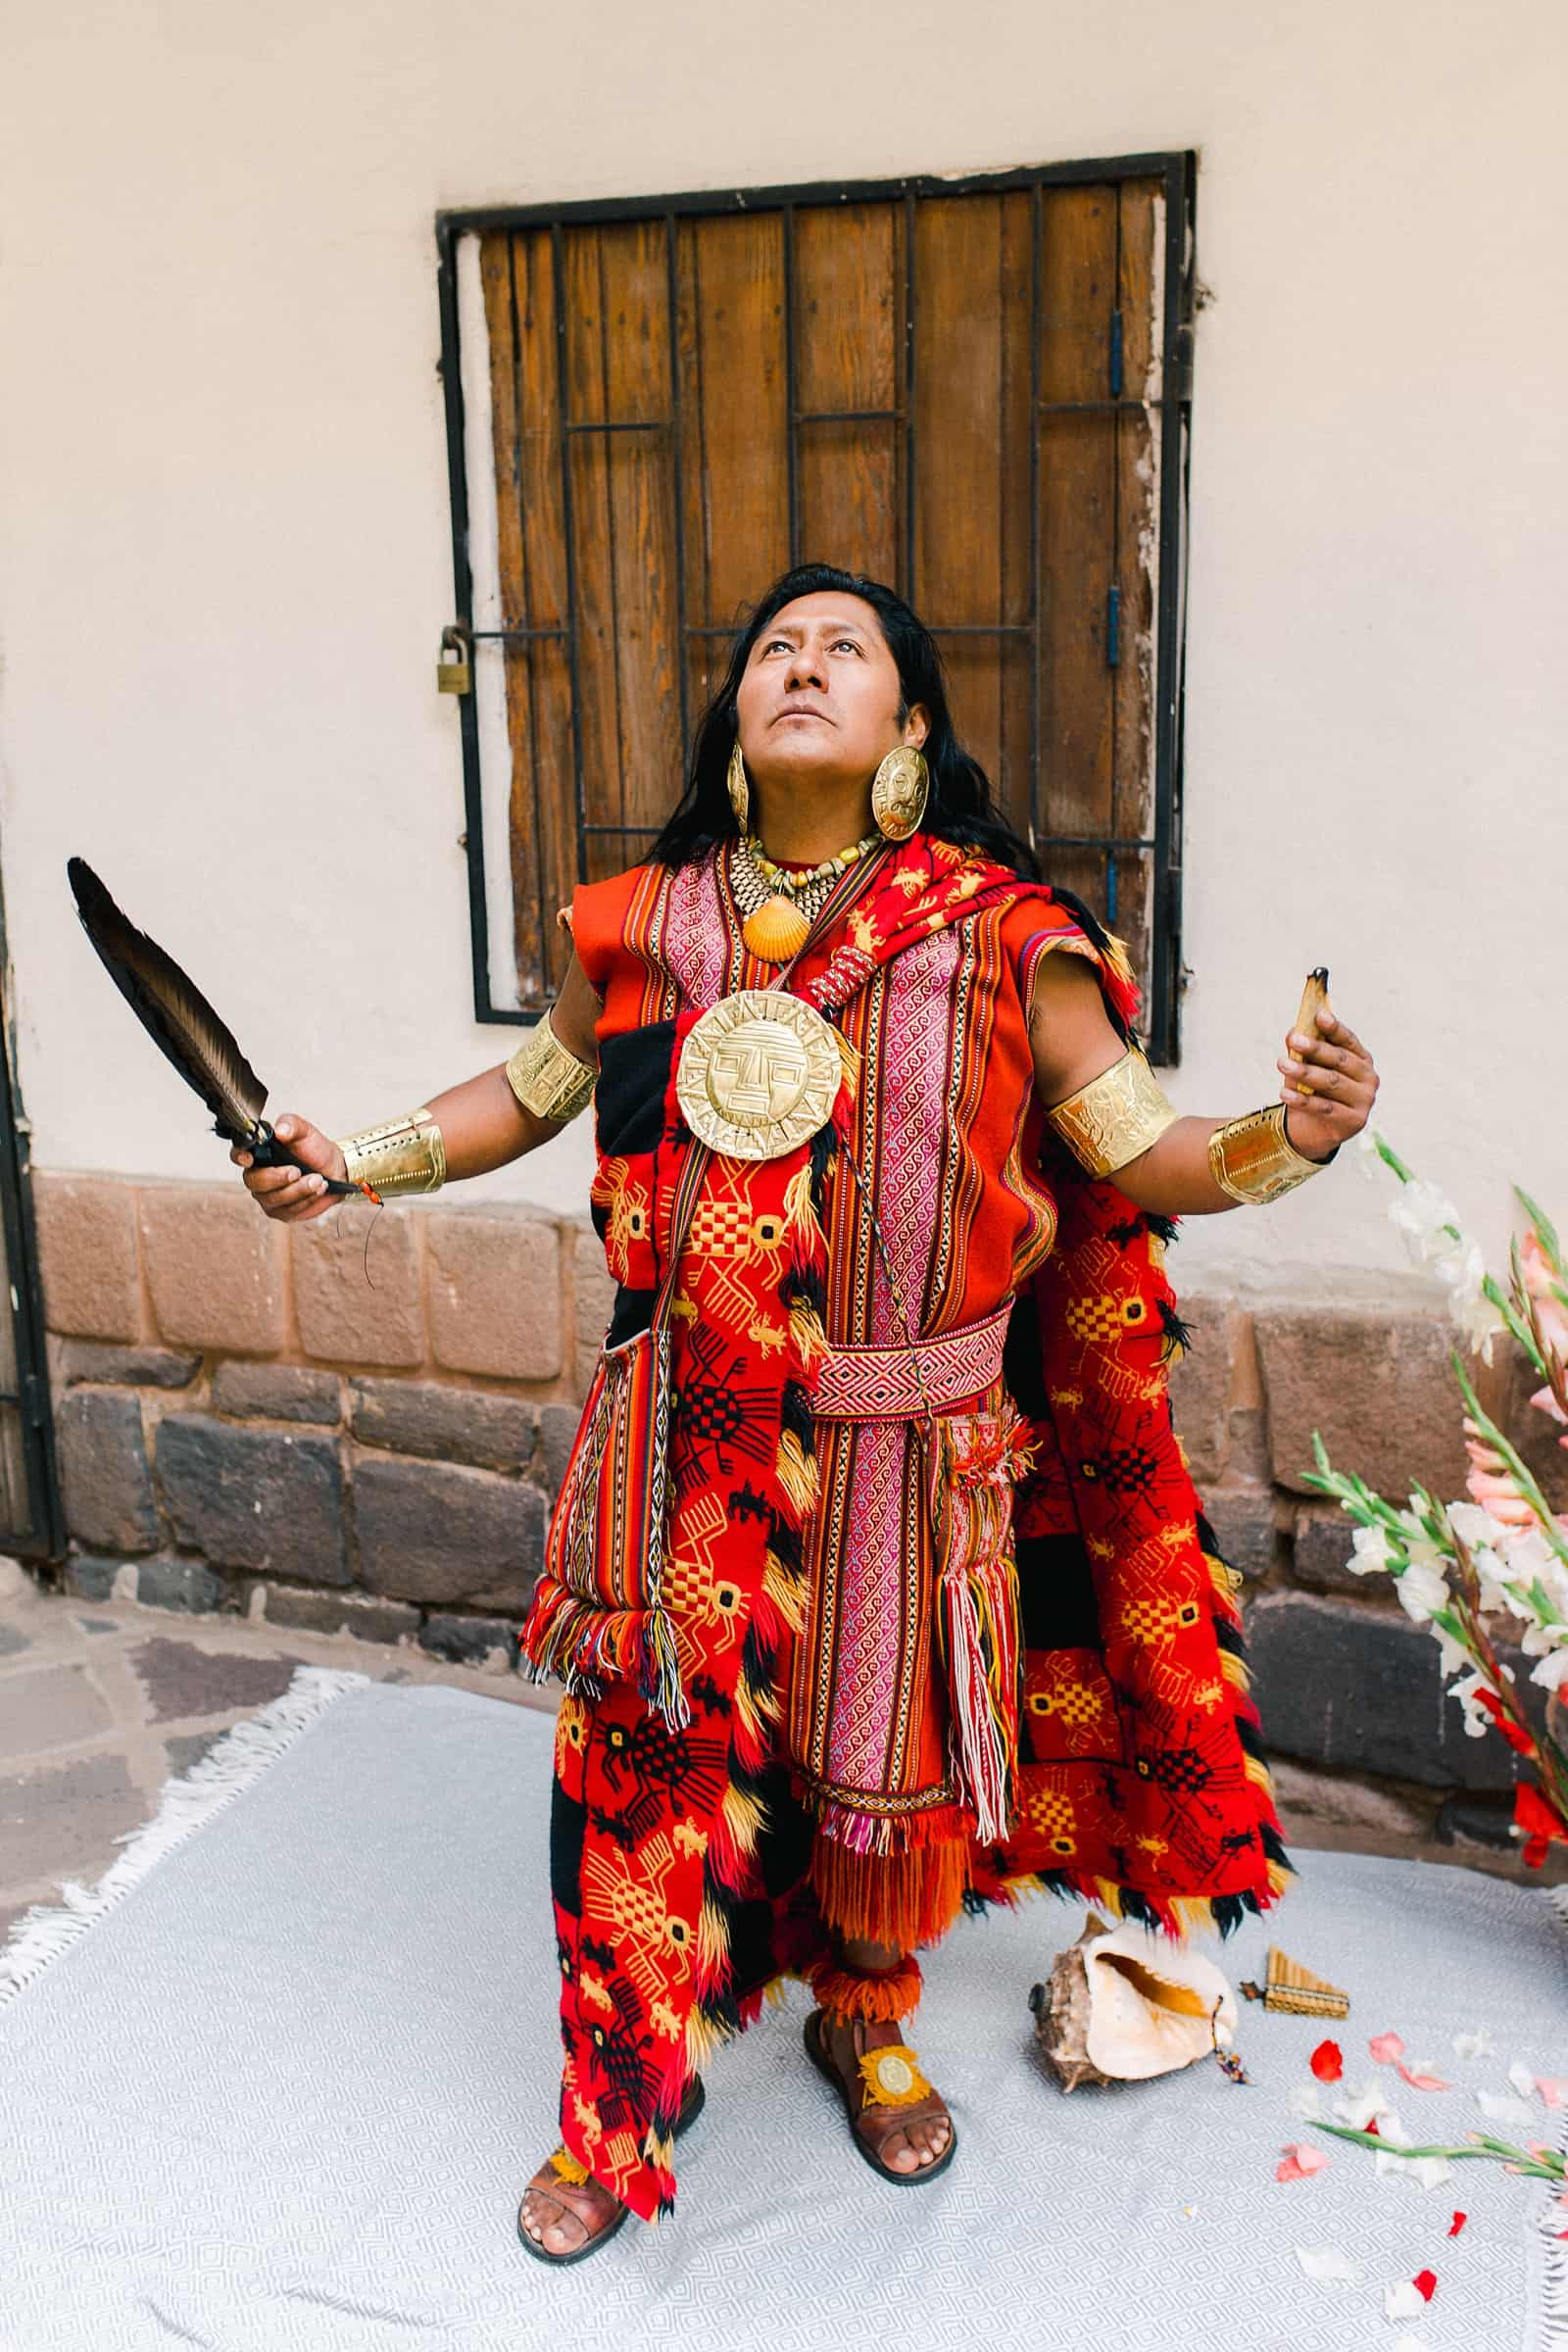 Cusco Peru Destination Wedding, travel wedding photography, Plaza de Armas ceremony with shaman officiant